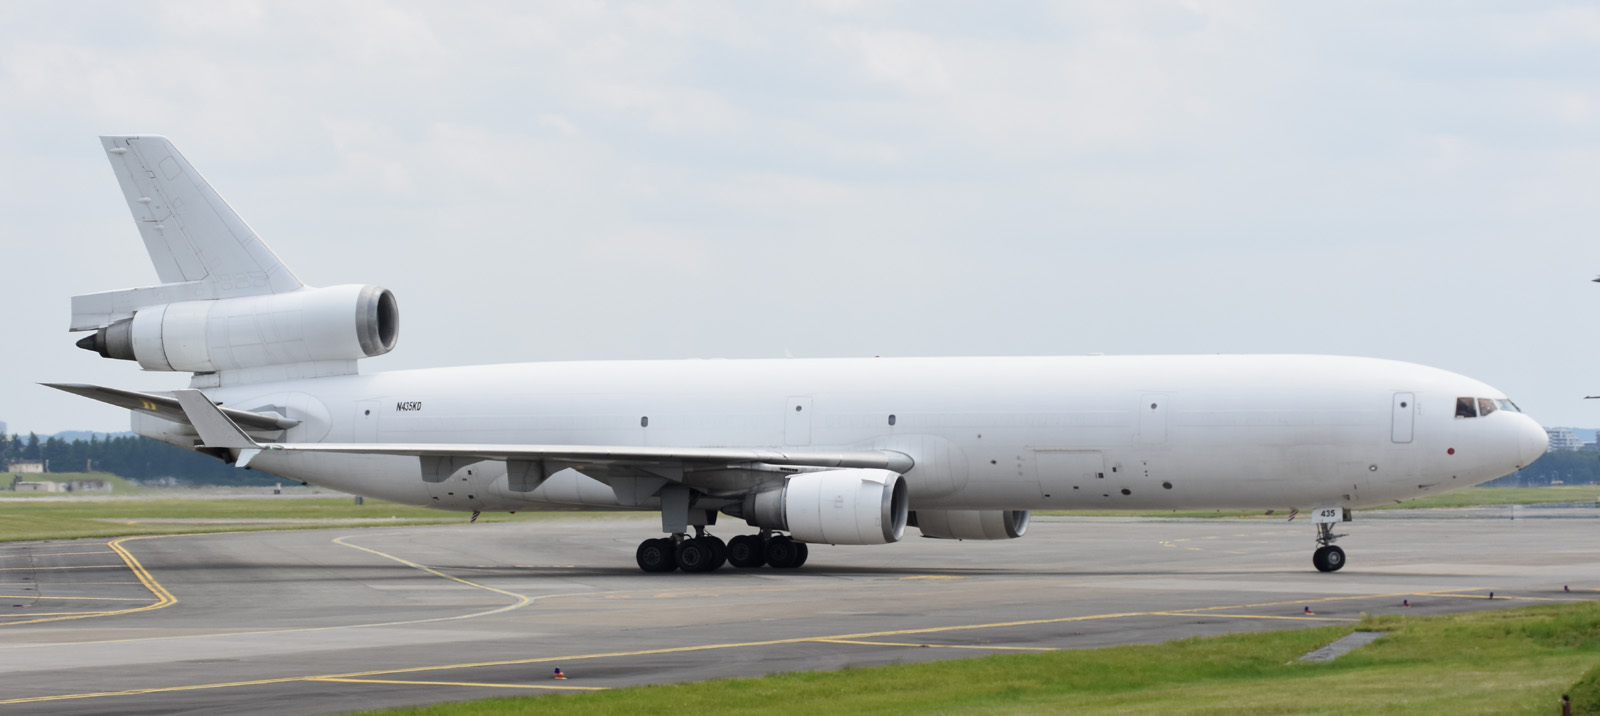 Md11170528g573